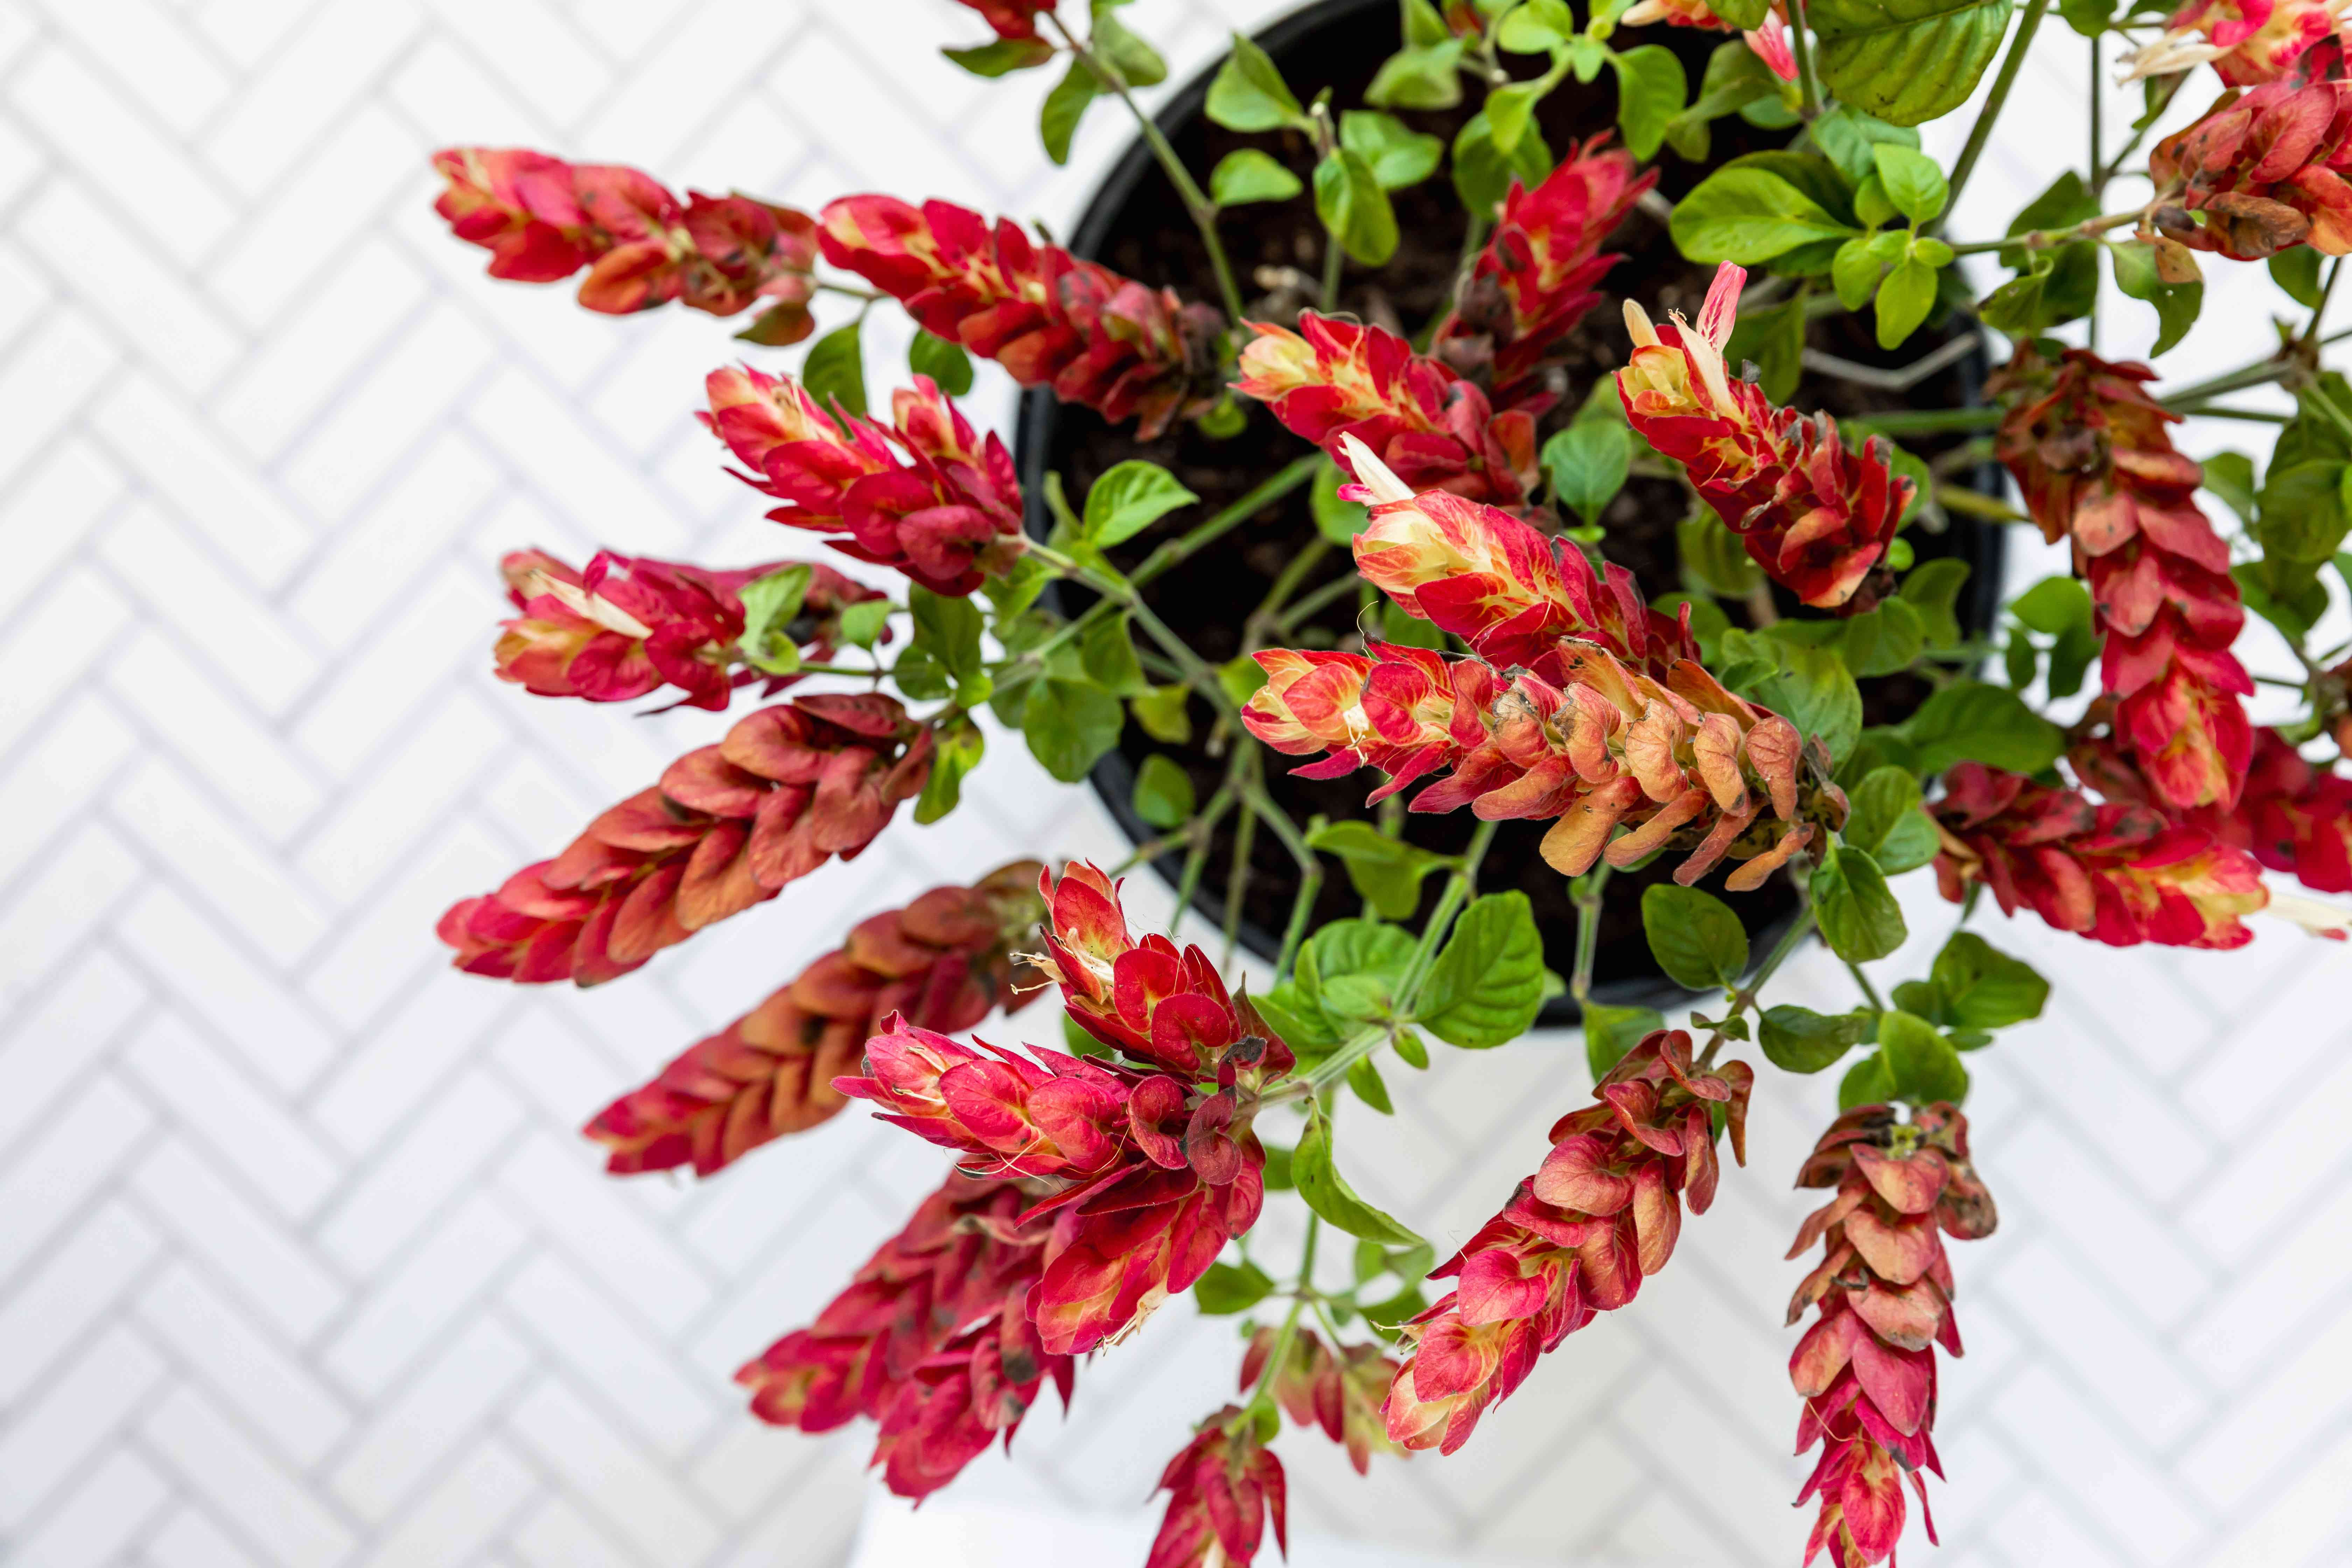 Justicia brandegeana shrimp plant with red and yellow bracts seen from above